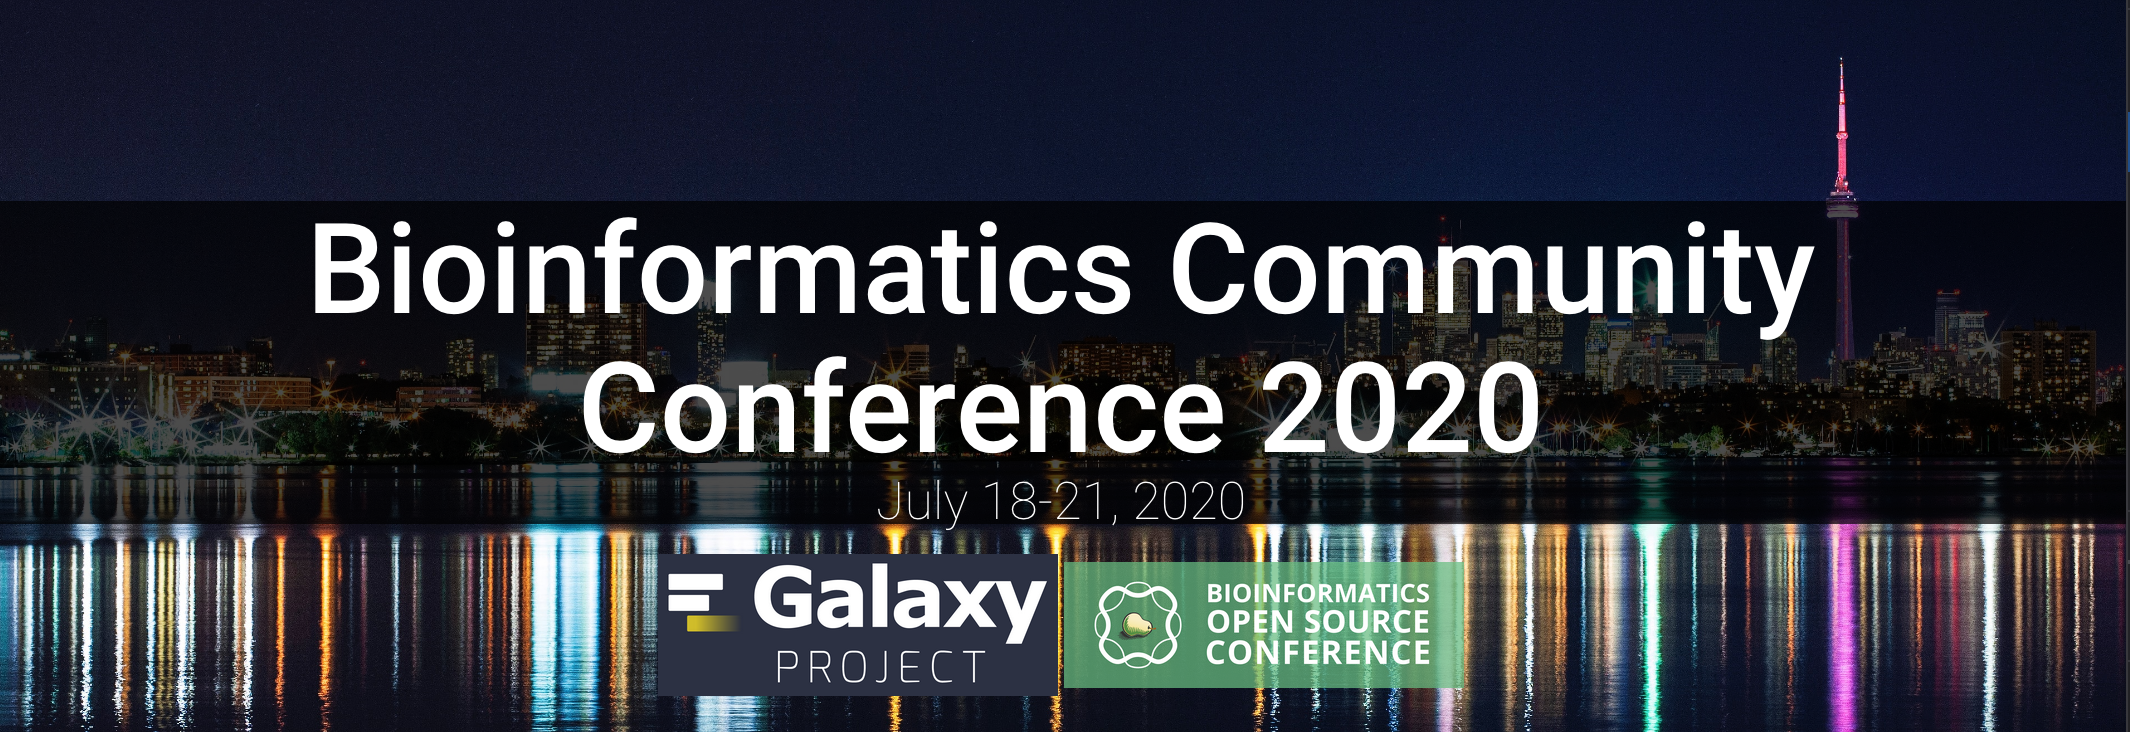 Bioinformatics Community Conference 2020 July 18-21, 2020